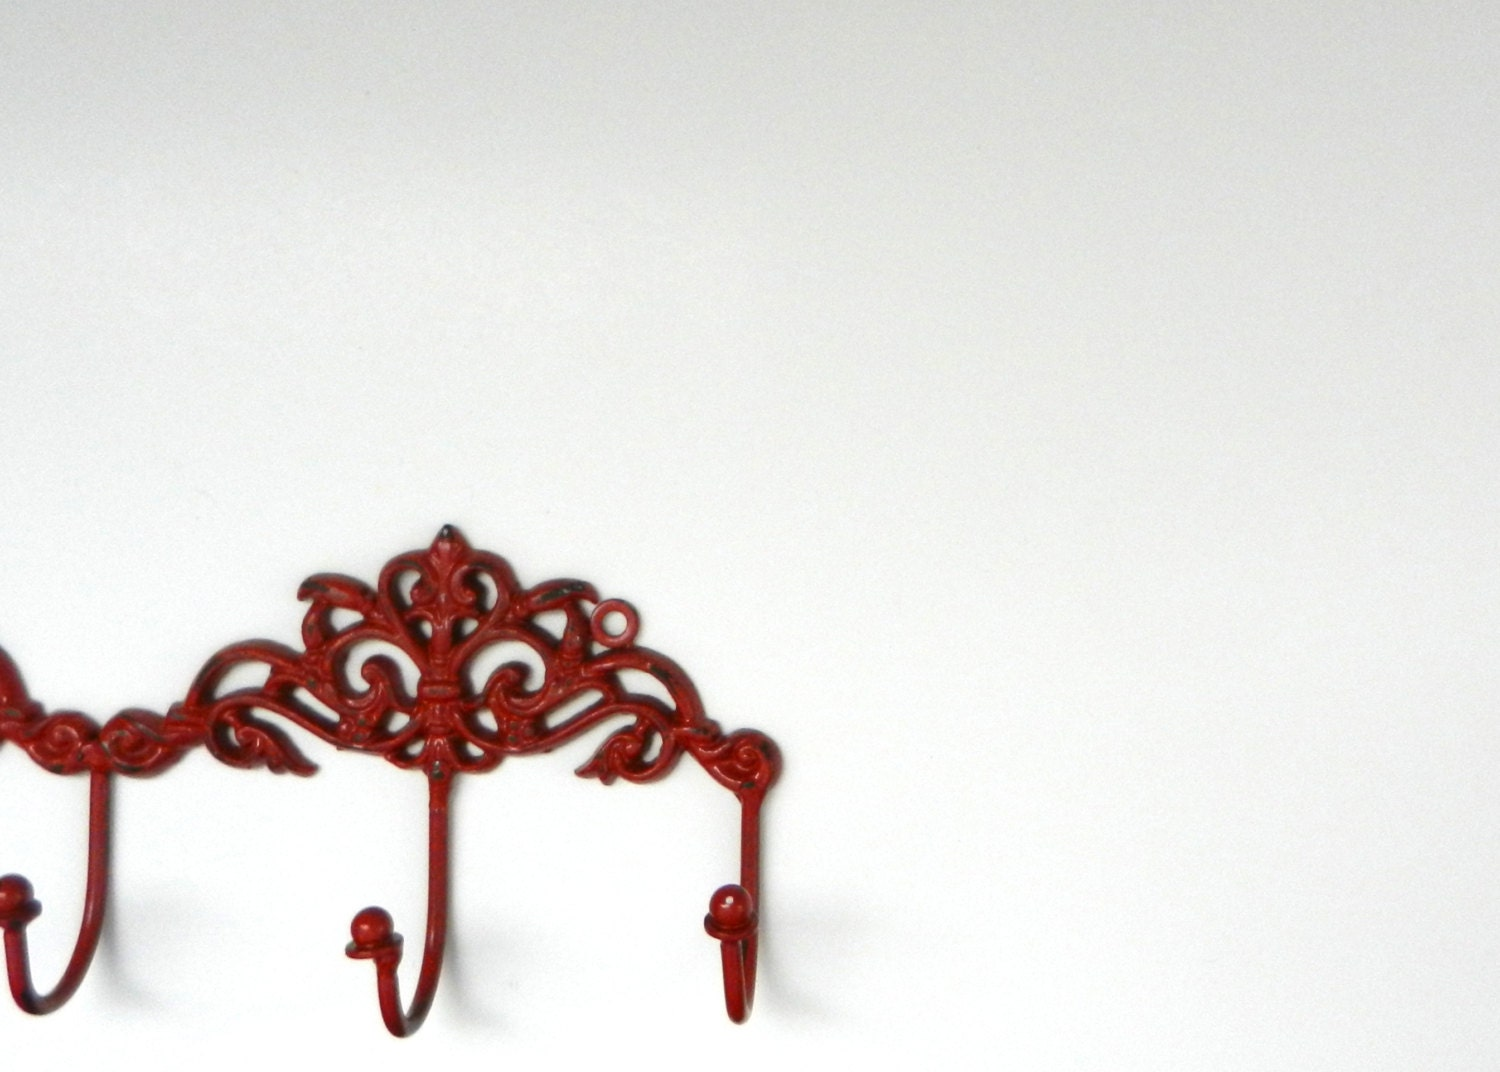 Red Country Wall Decor : Red decorative wall hook french country decor ornate key